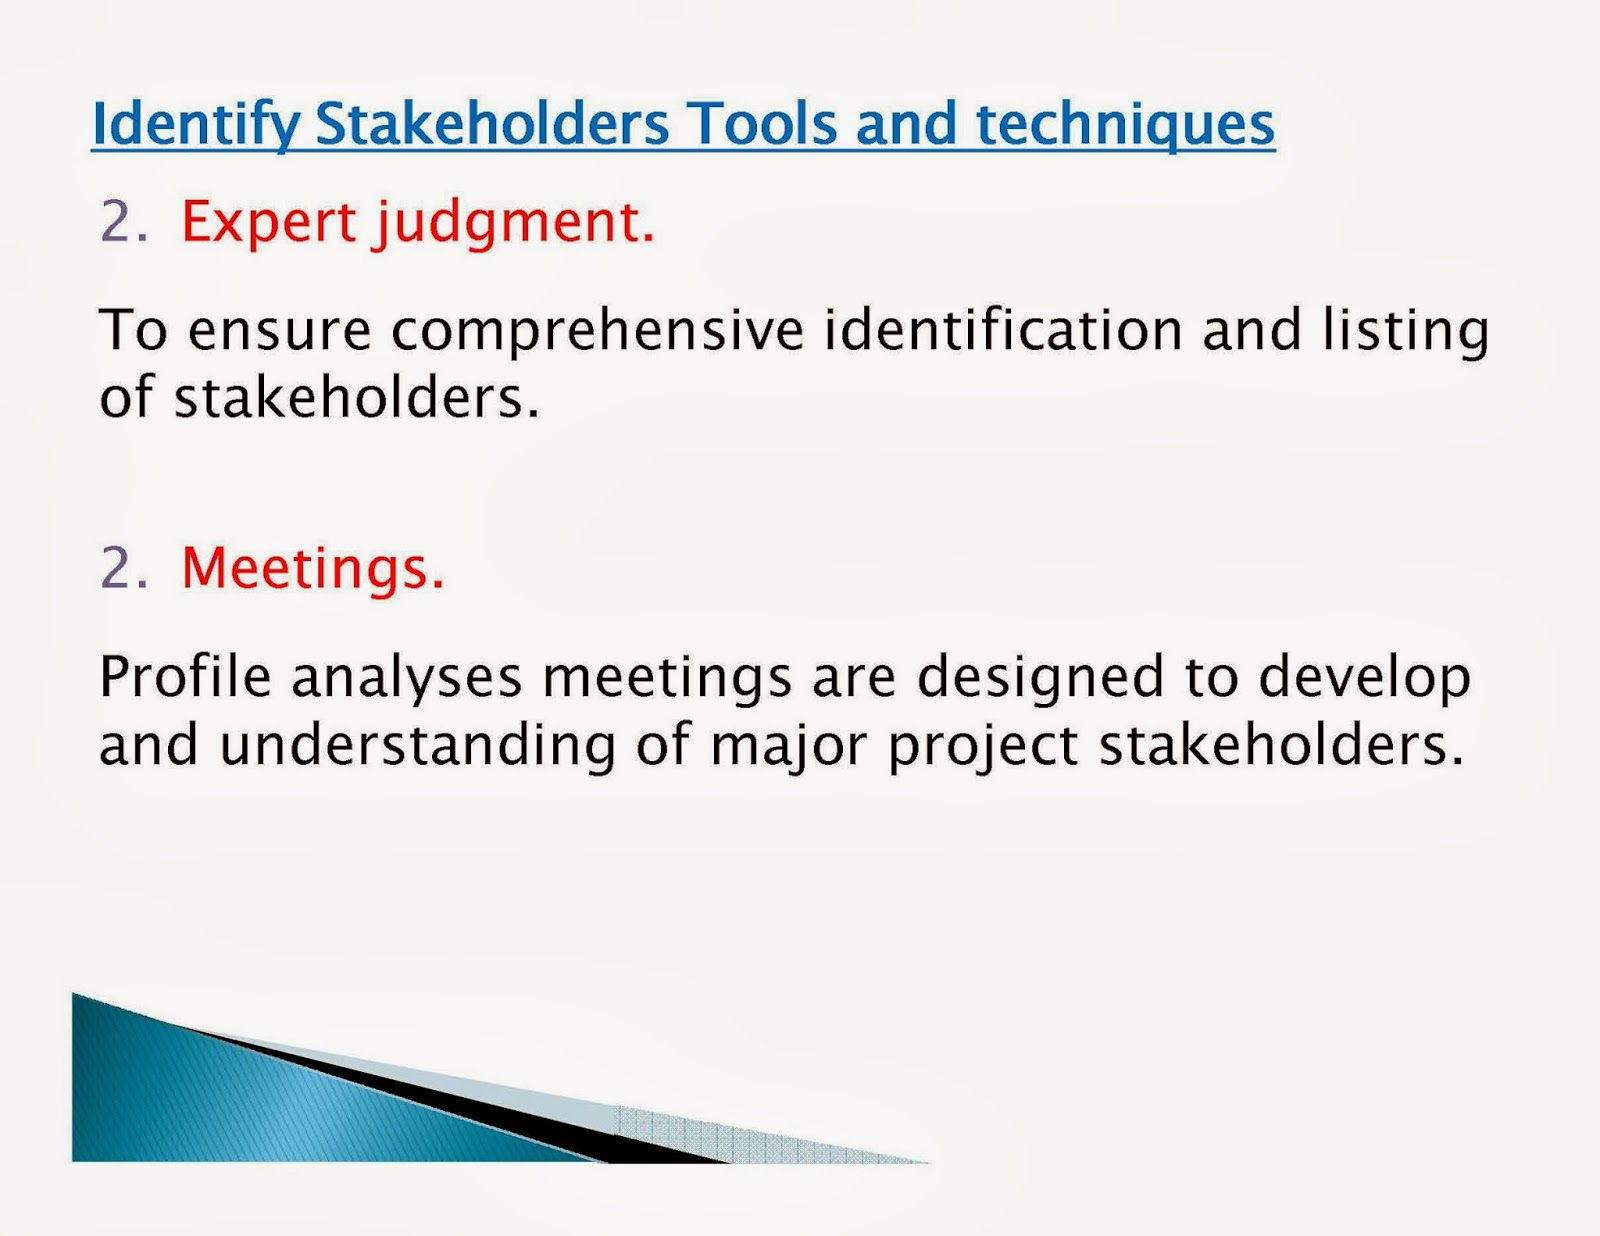 involving key stakeholders and its importance for the success of a project Stakeholder management is a critical component to the successful delivery of any project, programme or activity a stakeholder is any individual, group or organization that can affect, be affected by, or perceive itself to be affected by a programme stakeholder management creates positive relationships with stakeholders  do some of these influencers therefore become important stakeholders in.